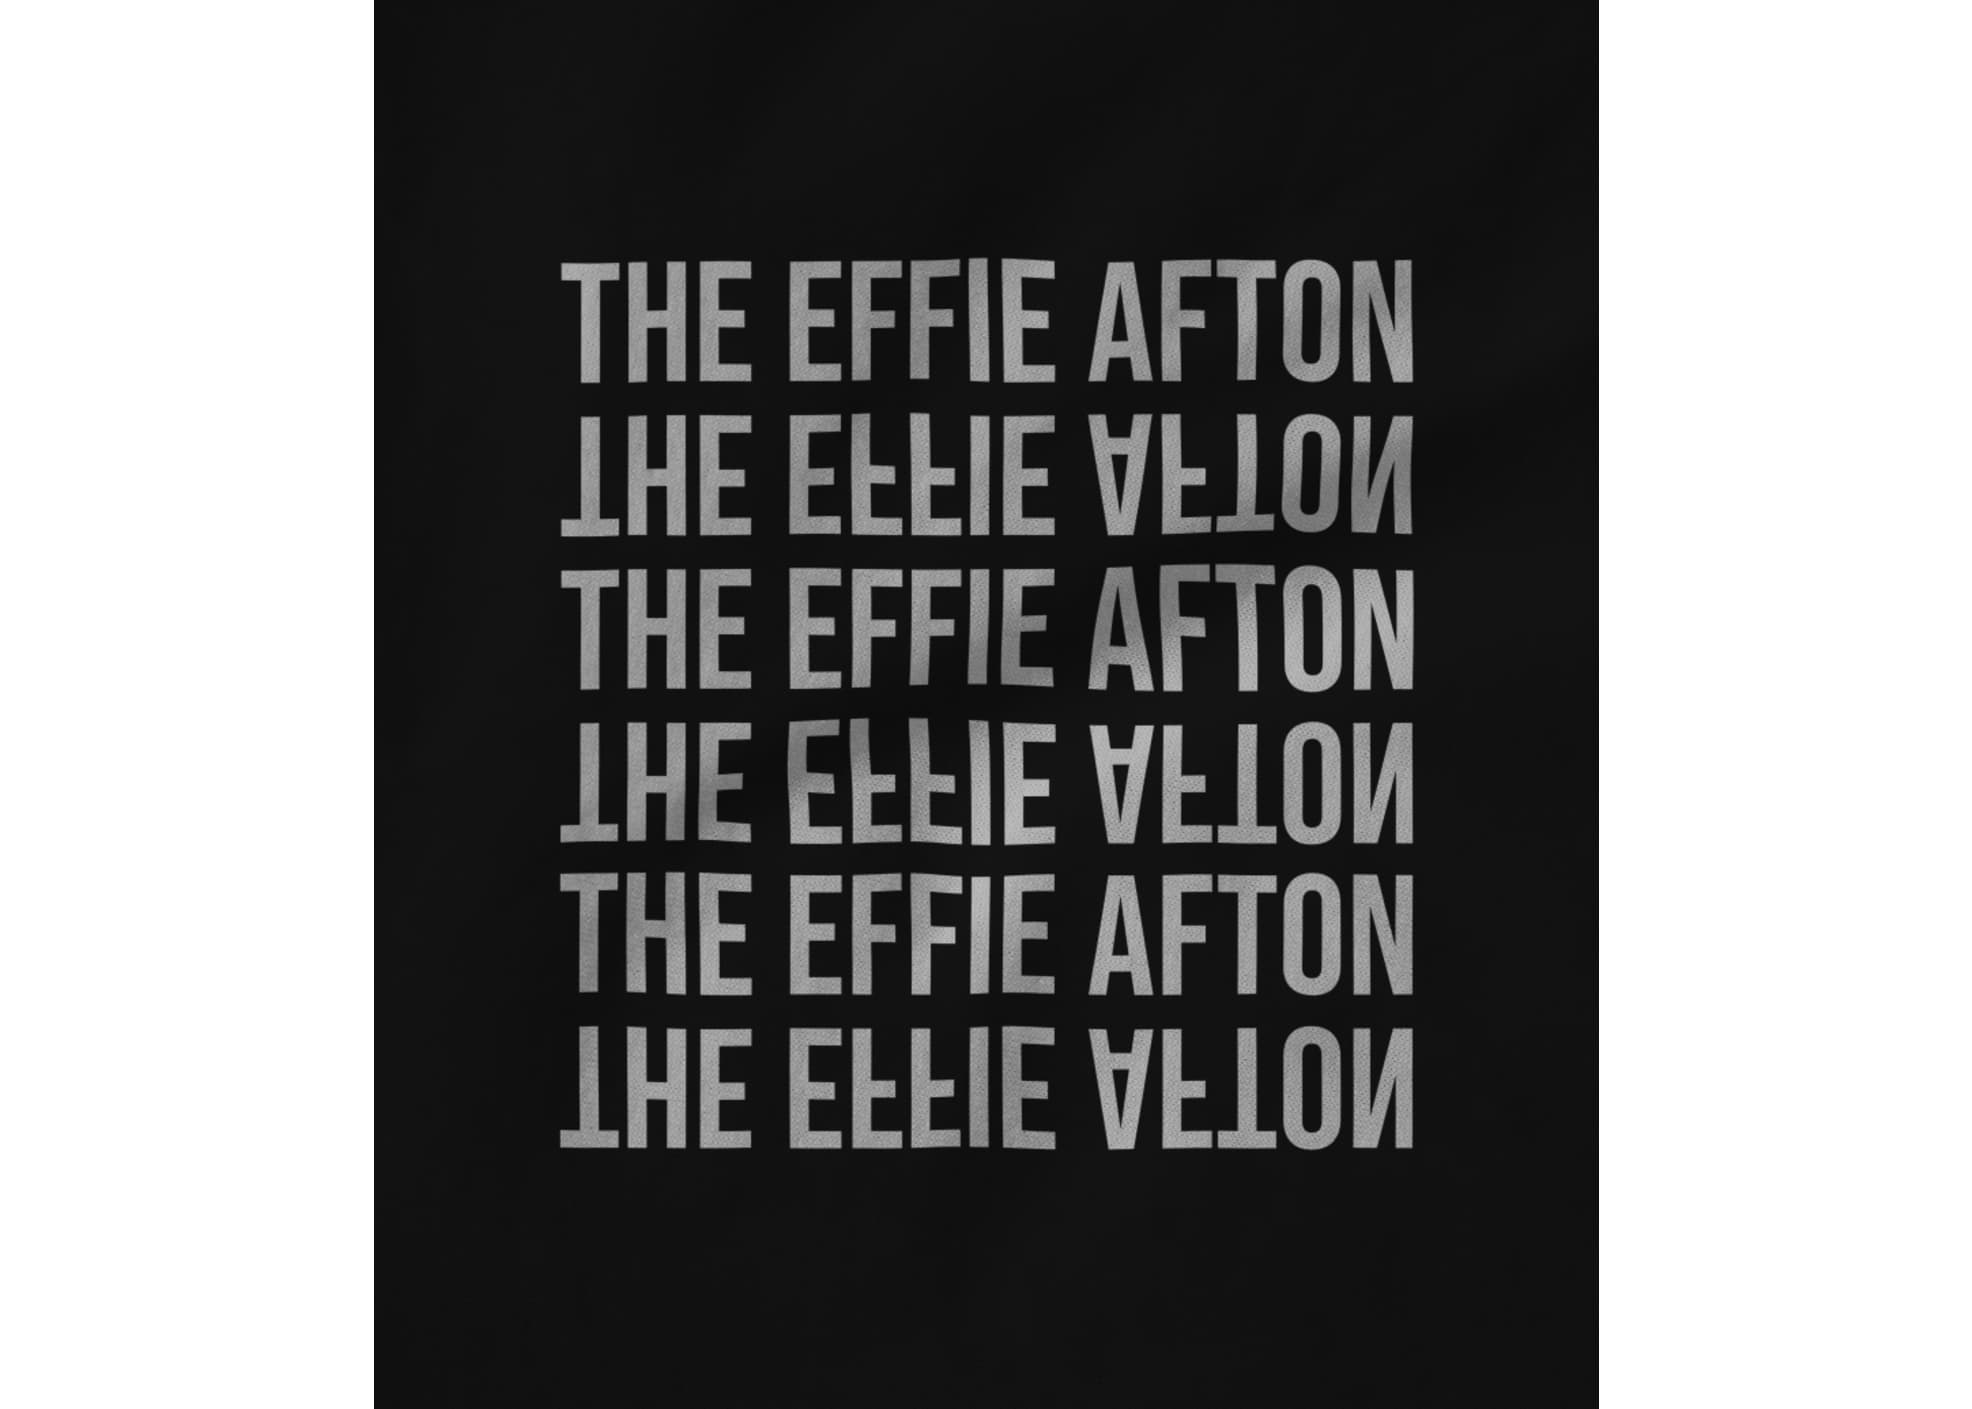 The effie afton inverted text 1583590656